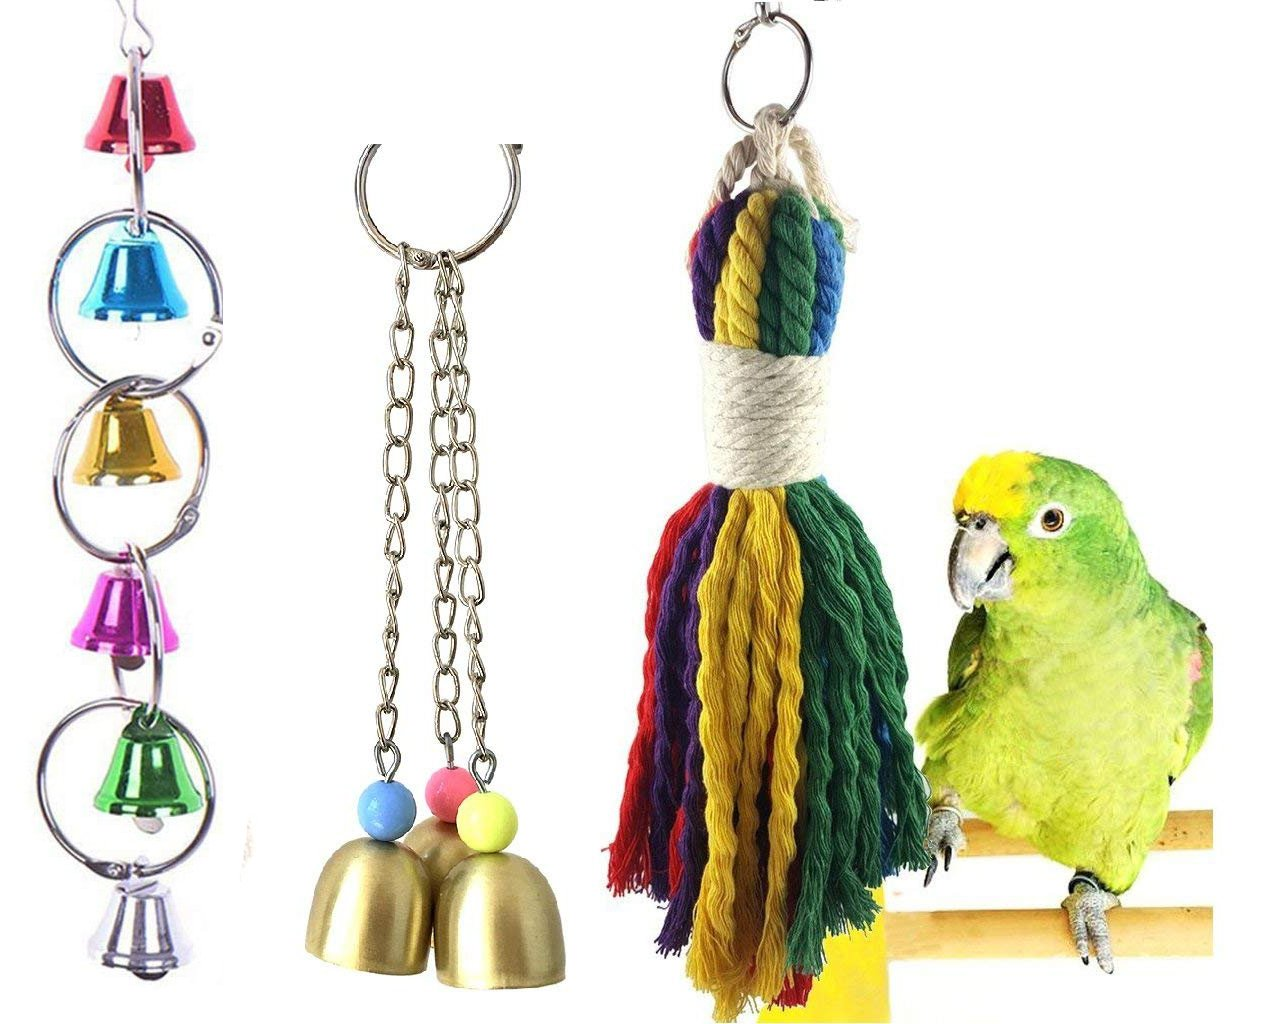 Lasoue Colorful Hanging Rope Toys Bird Bell Chew Toy Parrot Cage Toy for Playing Chewing Preening Small and Medium Birds 3 Pack